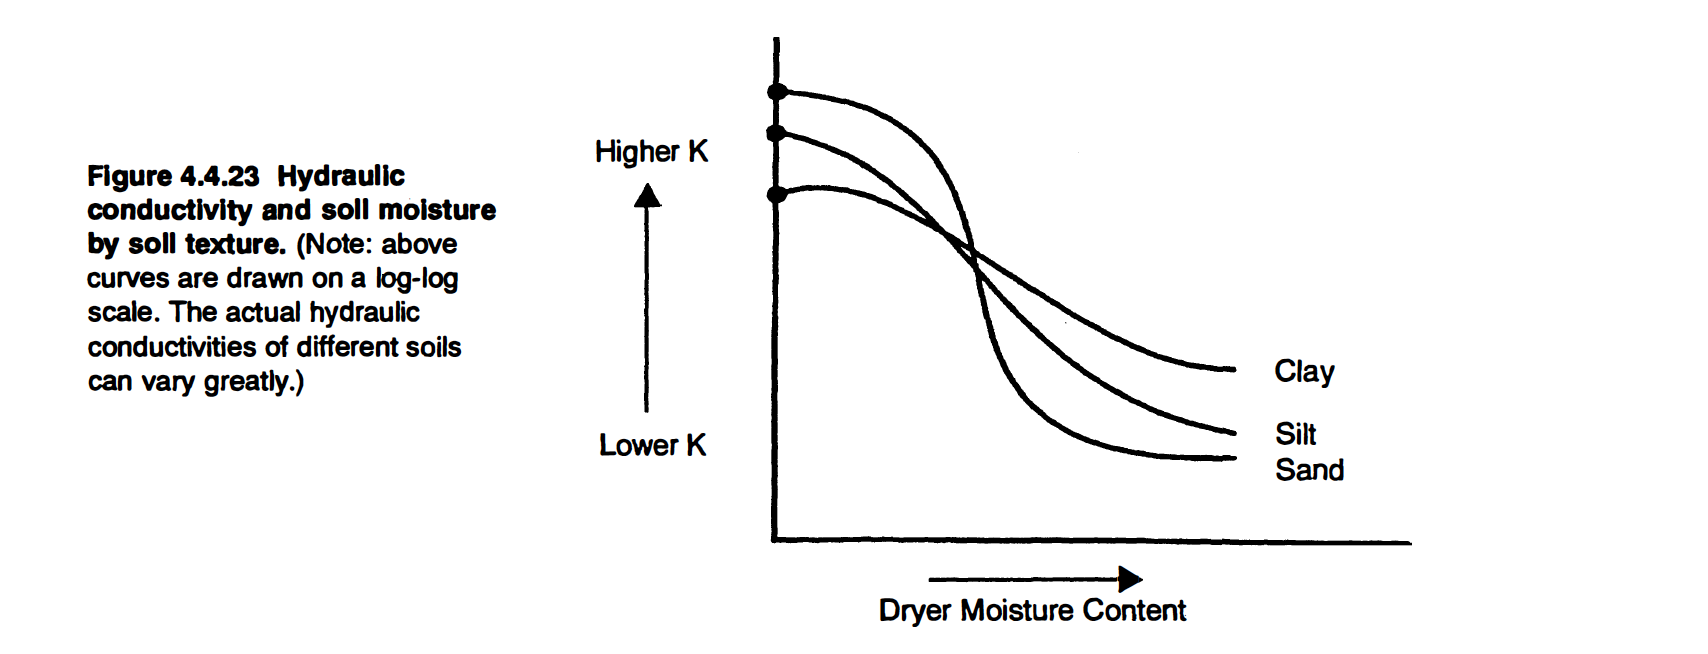 Hydraulic conductivity and soil moisture by soil texture